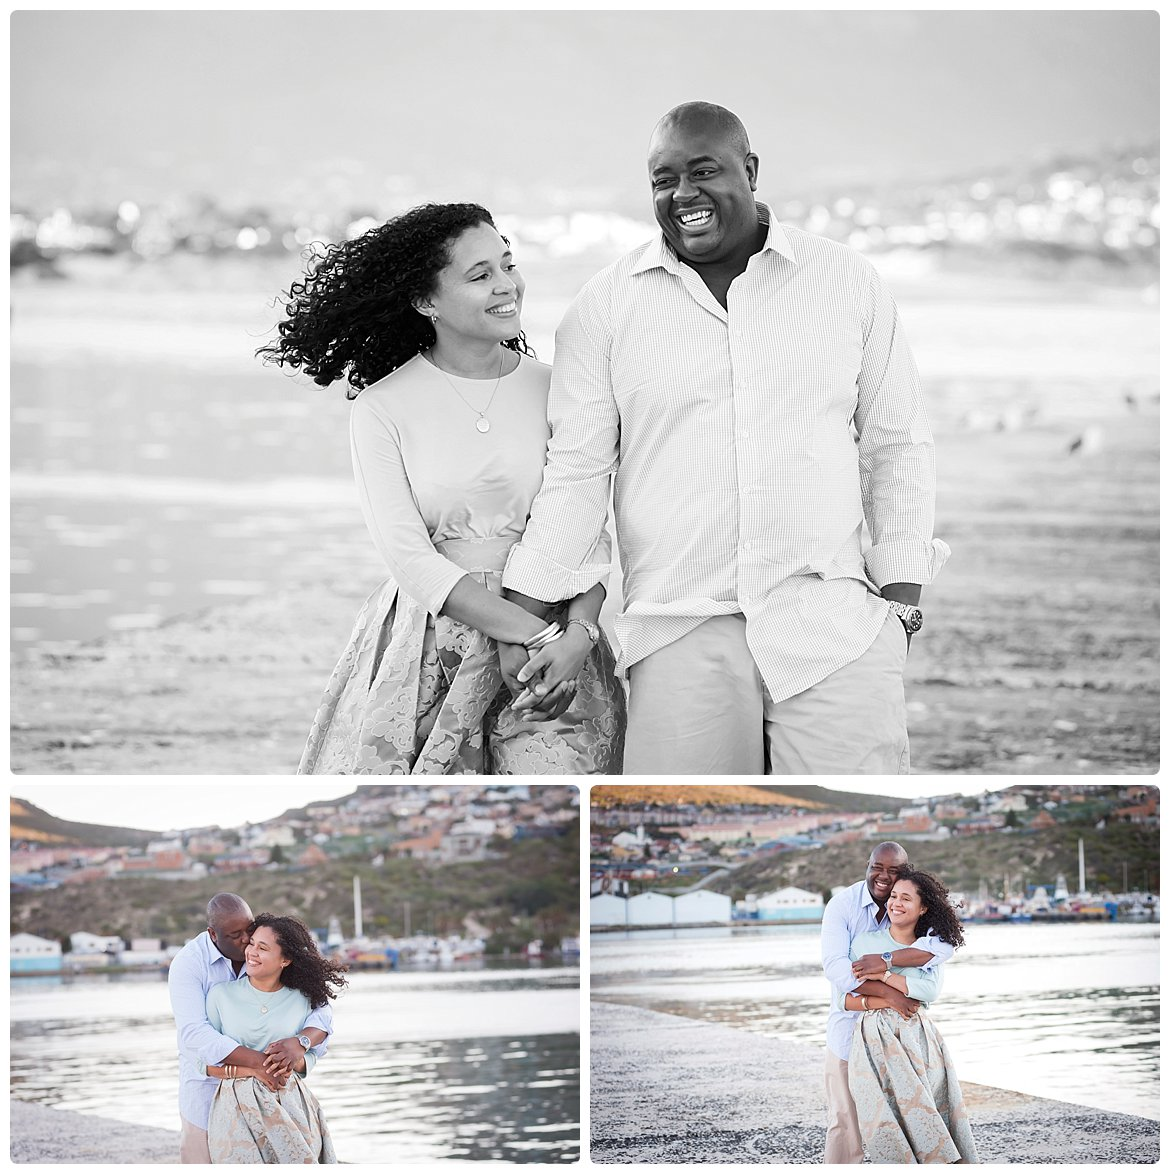 couple-portraits-shoot-cape-town-photographer-joanne-markland-WT-0008